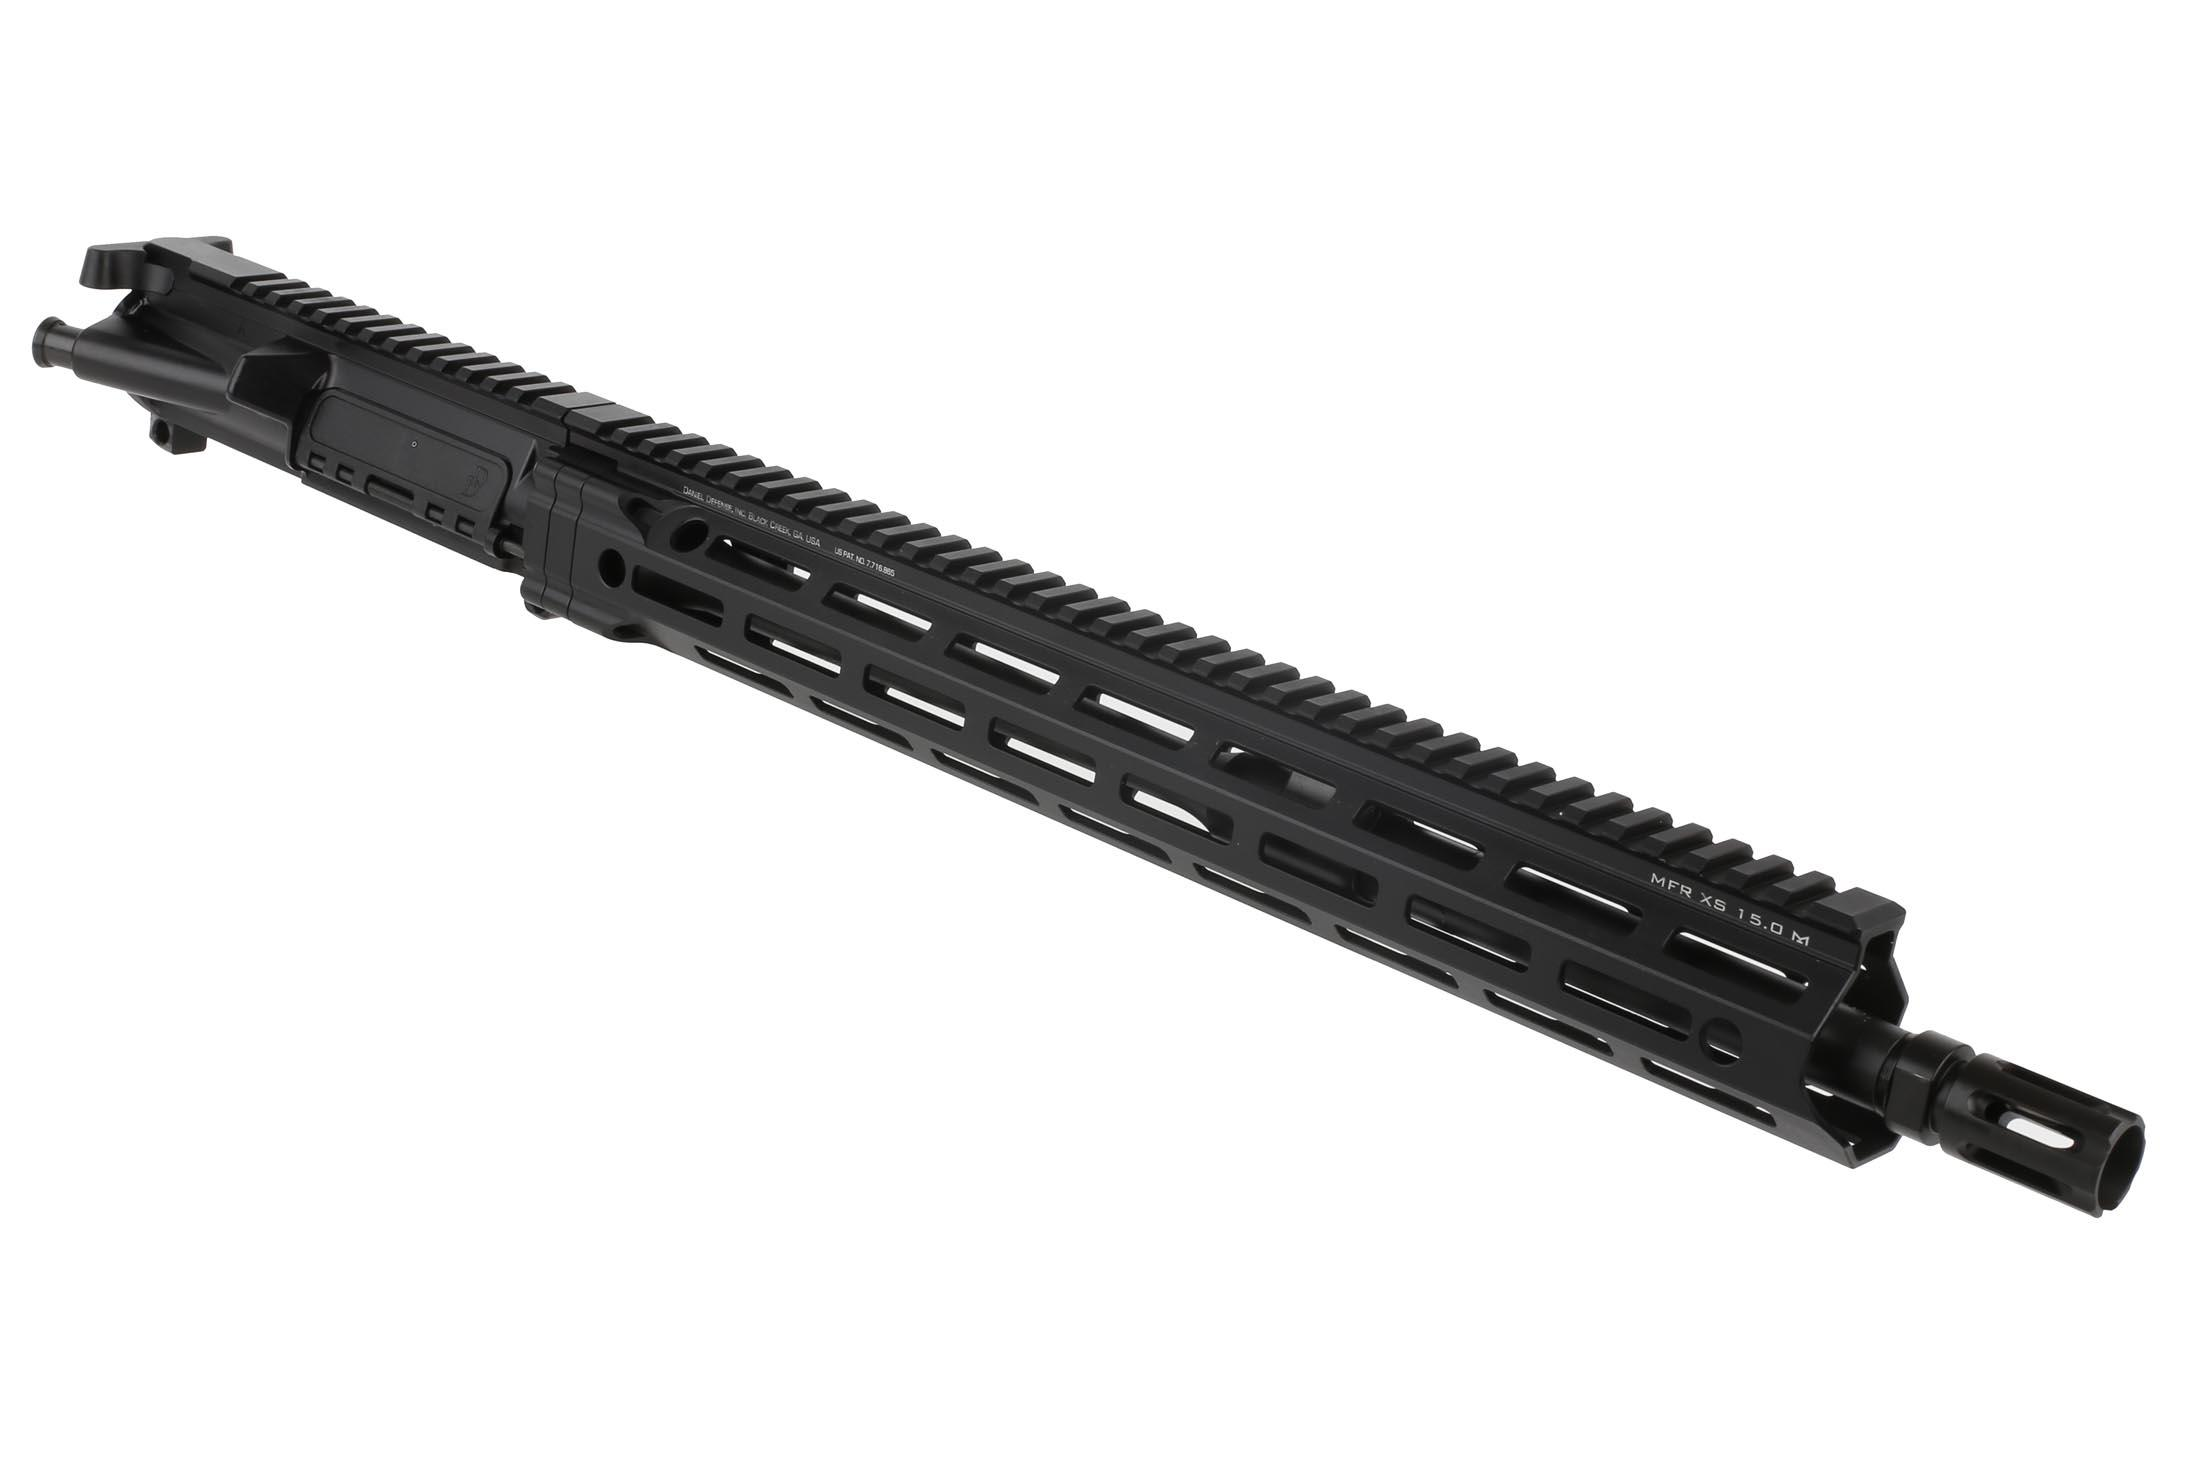 The Daniel Defense DDM4v7 Complete upper receiver features a 16 inch barrel with MFR XS M-LOK handguard